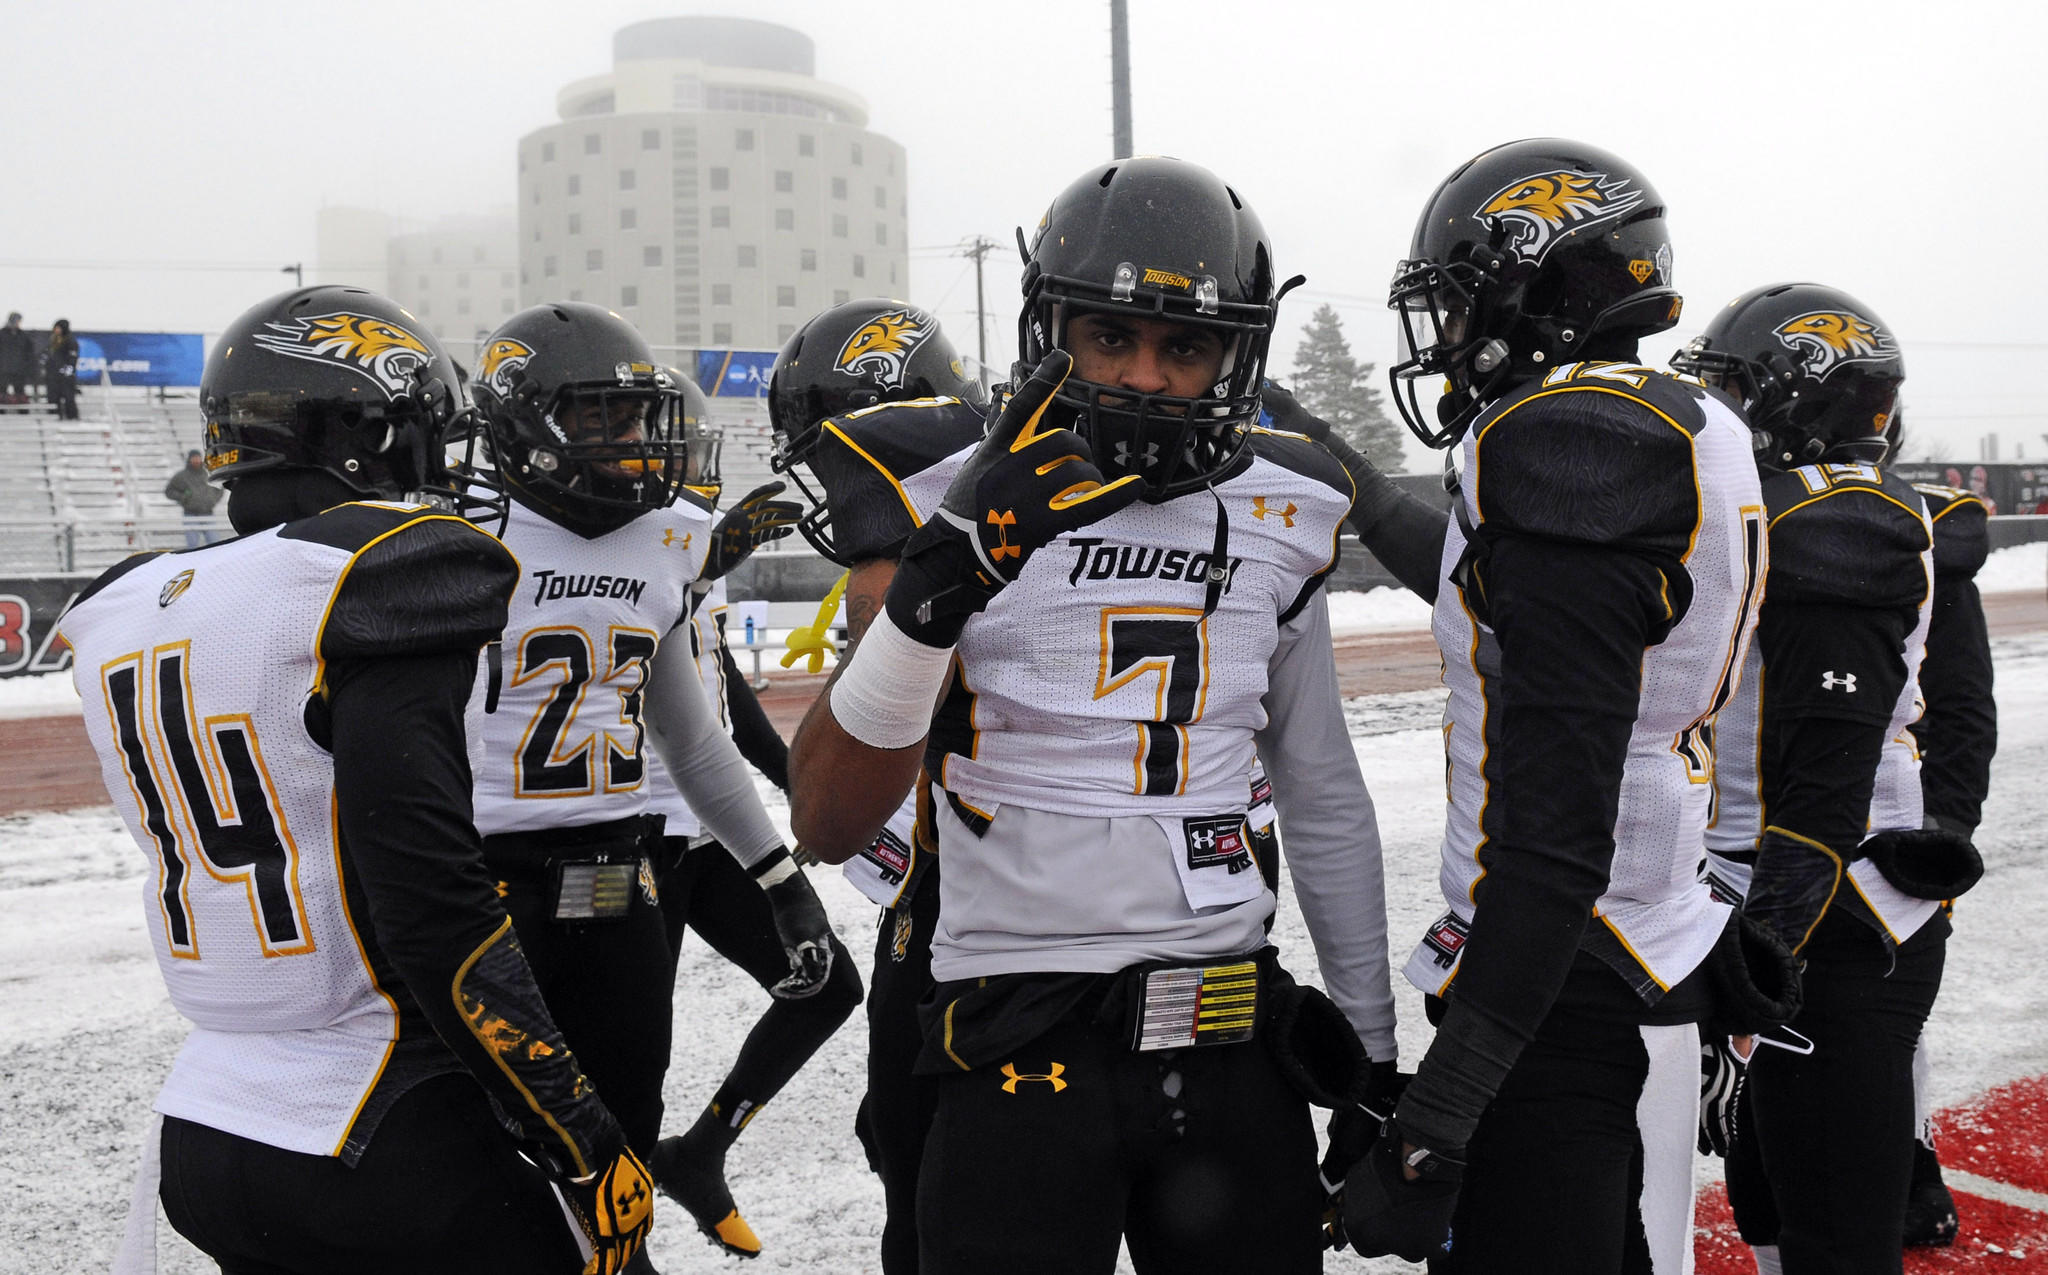 Towson safety Jordan Love warms up before game against Eastern Washington.